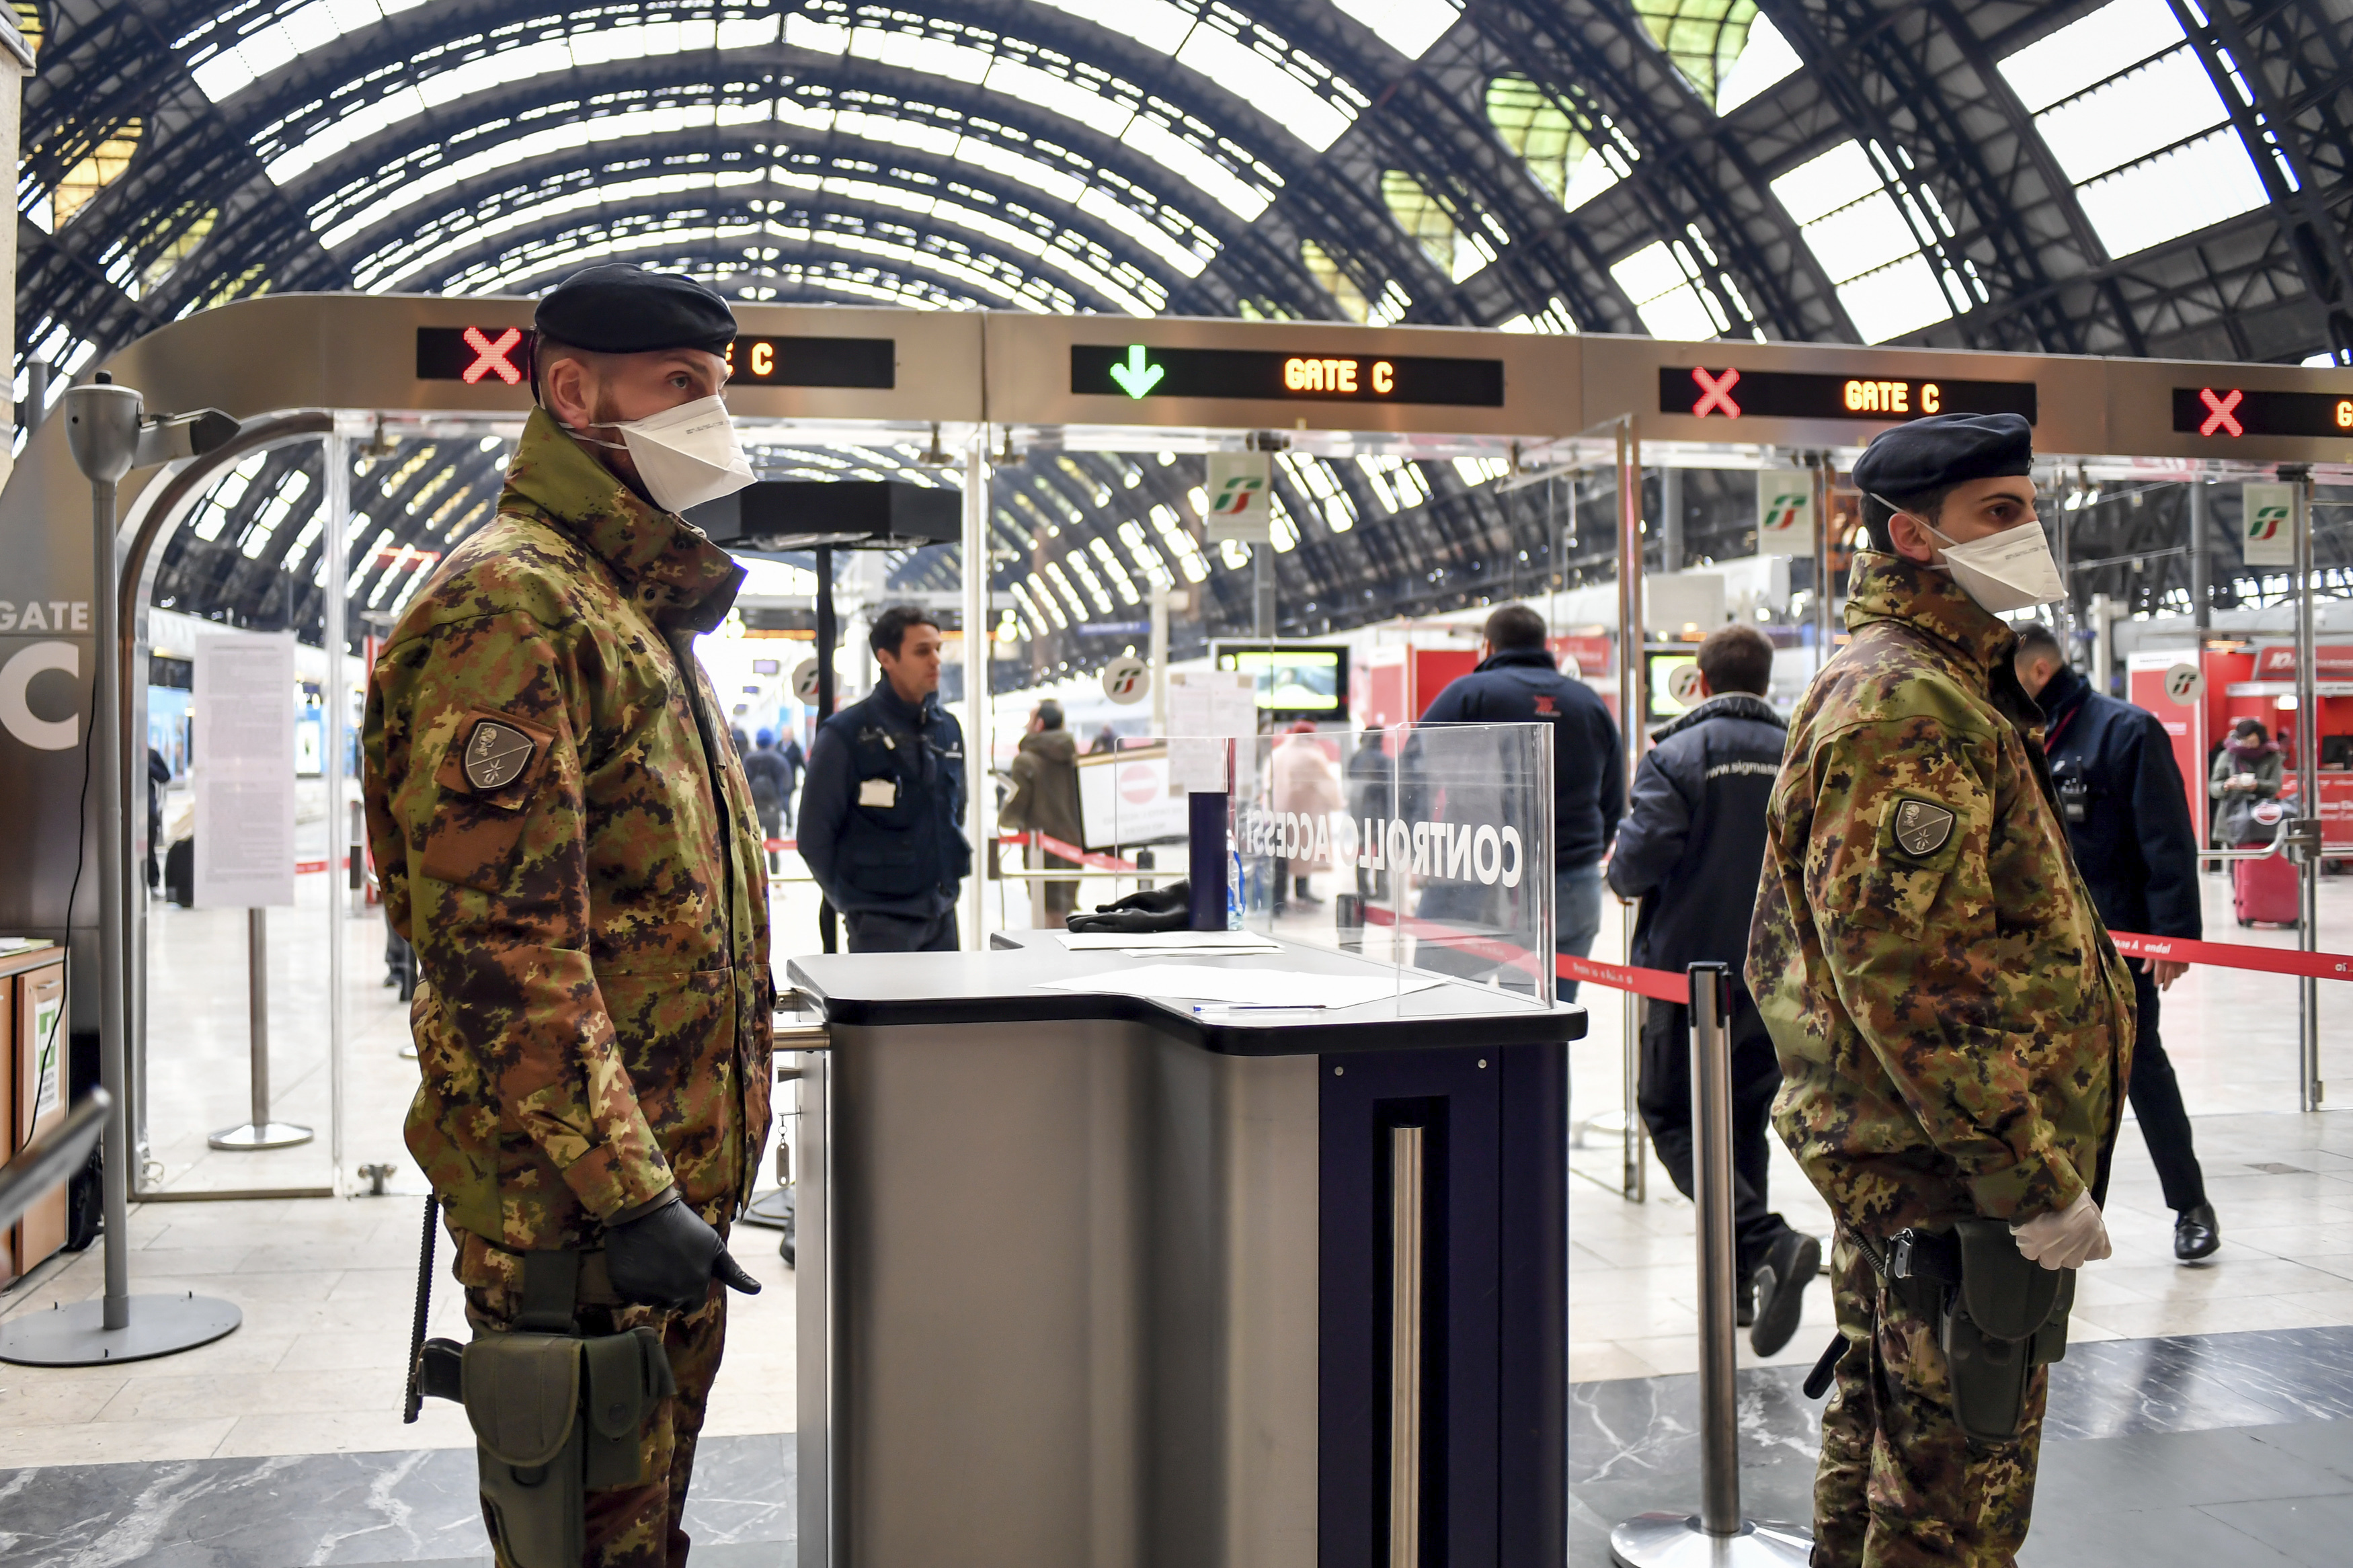 Italian soldiers patrol the gates at the Milan main train station on Monday.